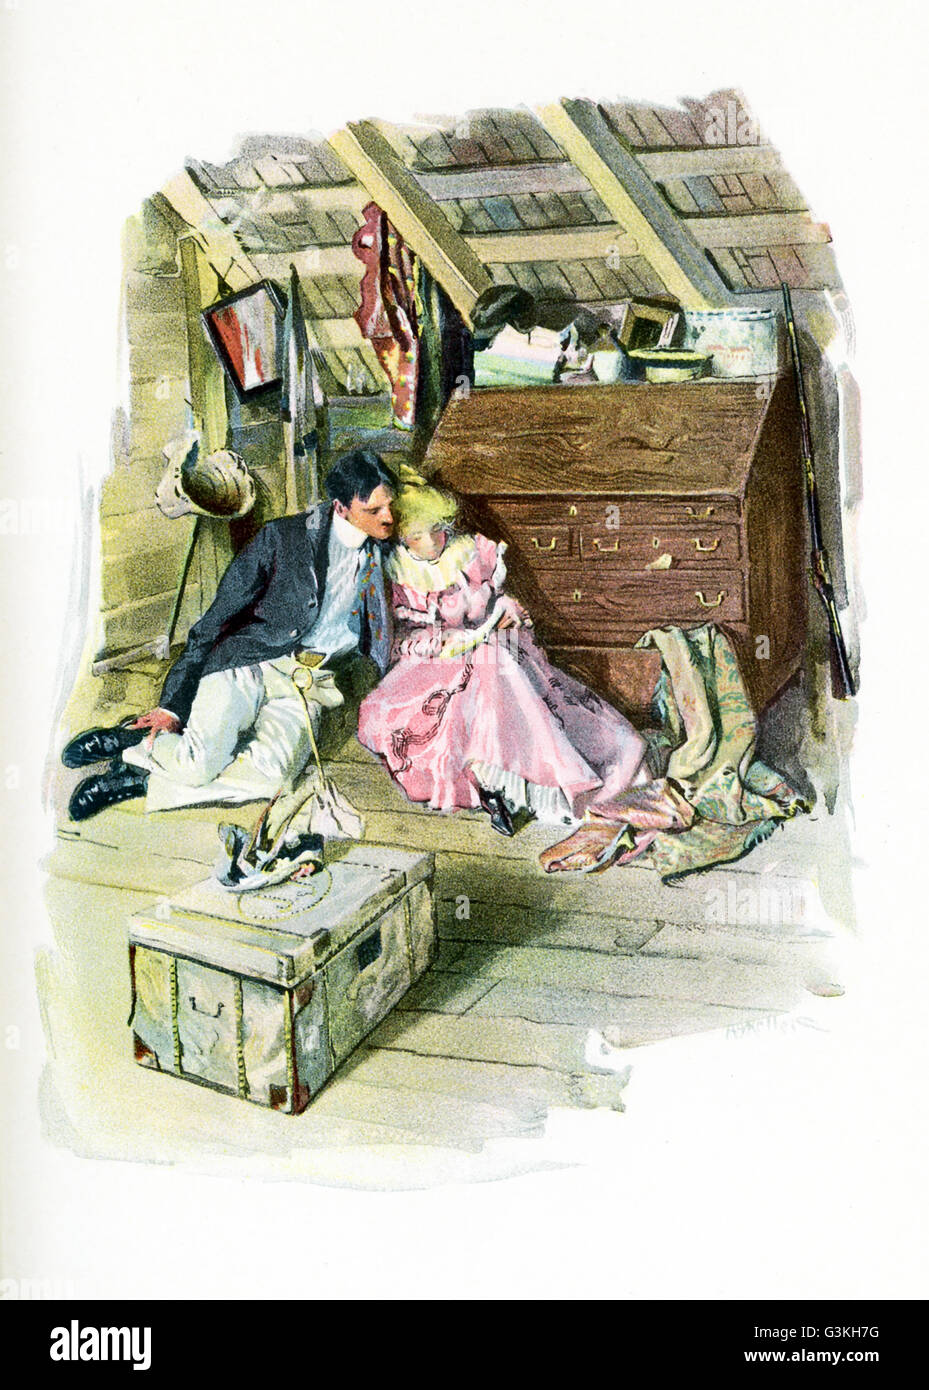 Amos Judd is a novel written in 1895 by J.A. Mitchell (1845-1918). It takes place against a background of civil - Stock Image